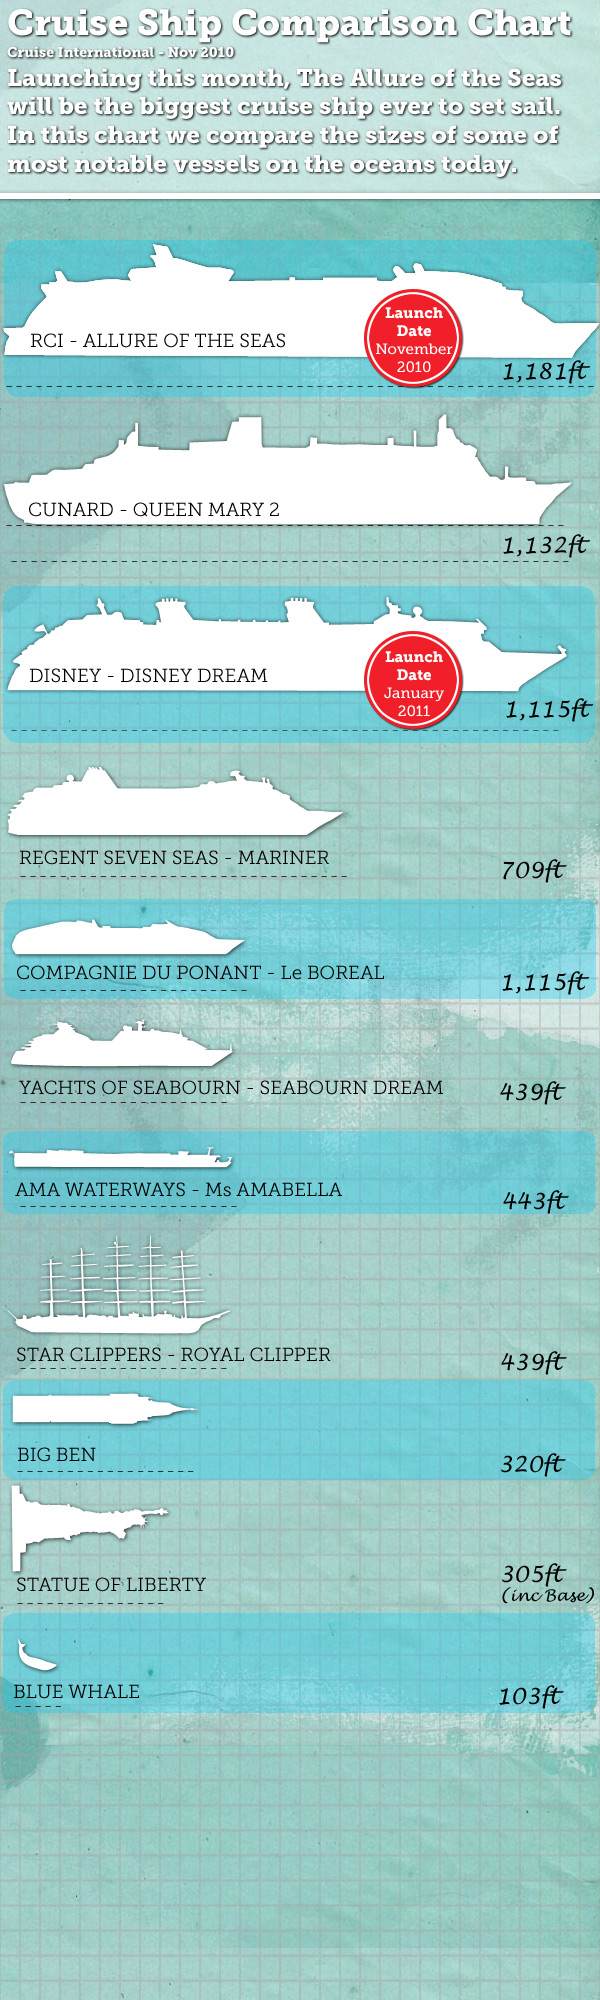 Size Comparison Chart For Dream/Fantasy Vs Oasis Of The Seas | The DIS Disney Discussion Forums ...